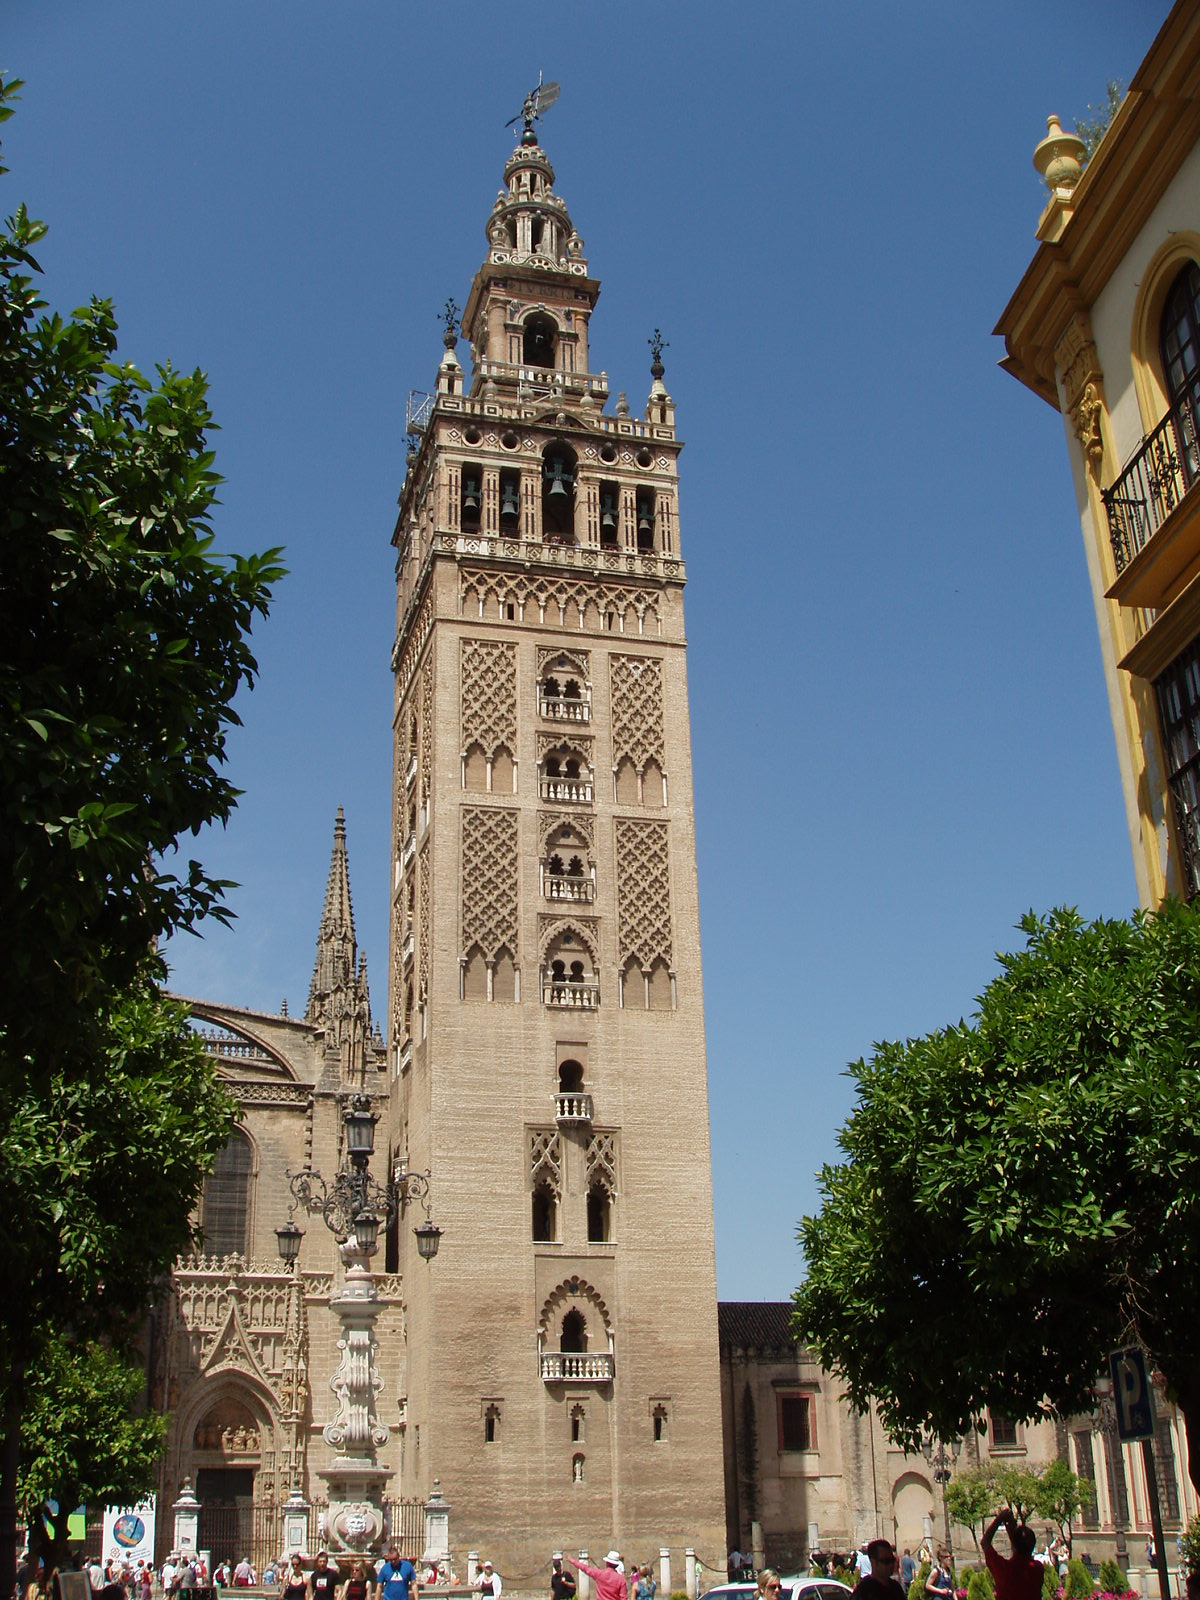 http://upload.wikimedia.org/wikipedia/commons/7/76/Giralda_de_Sevilla_5.jpg